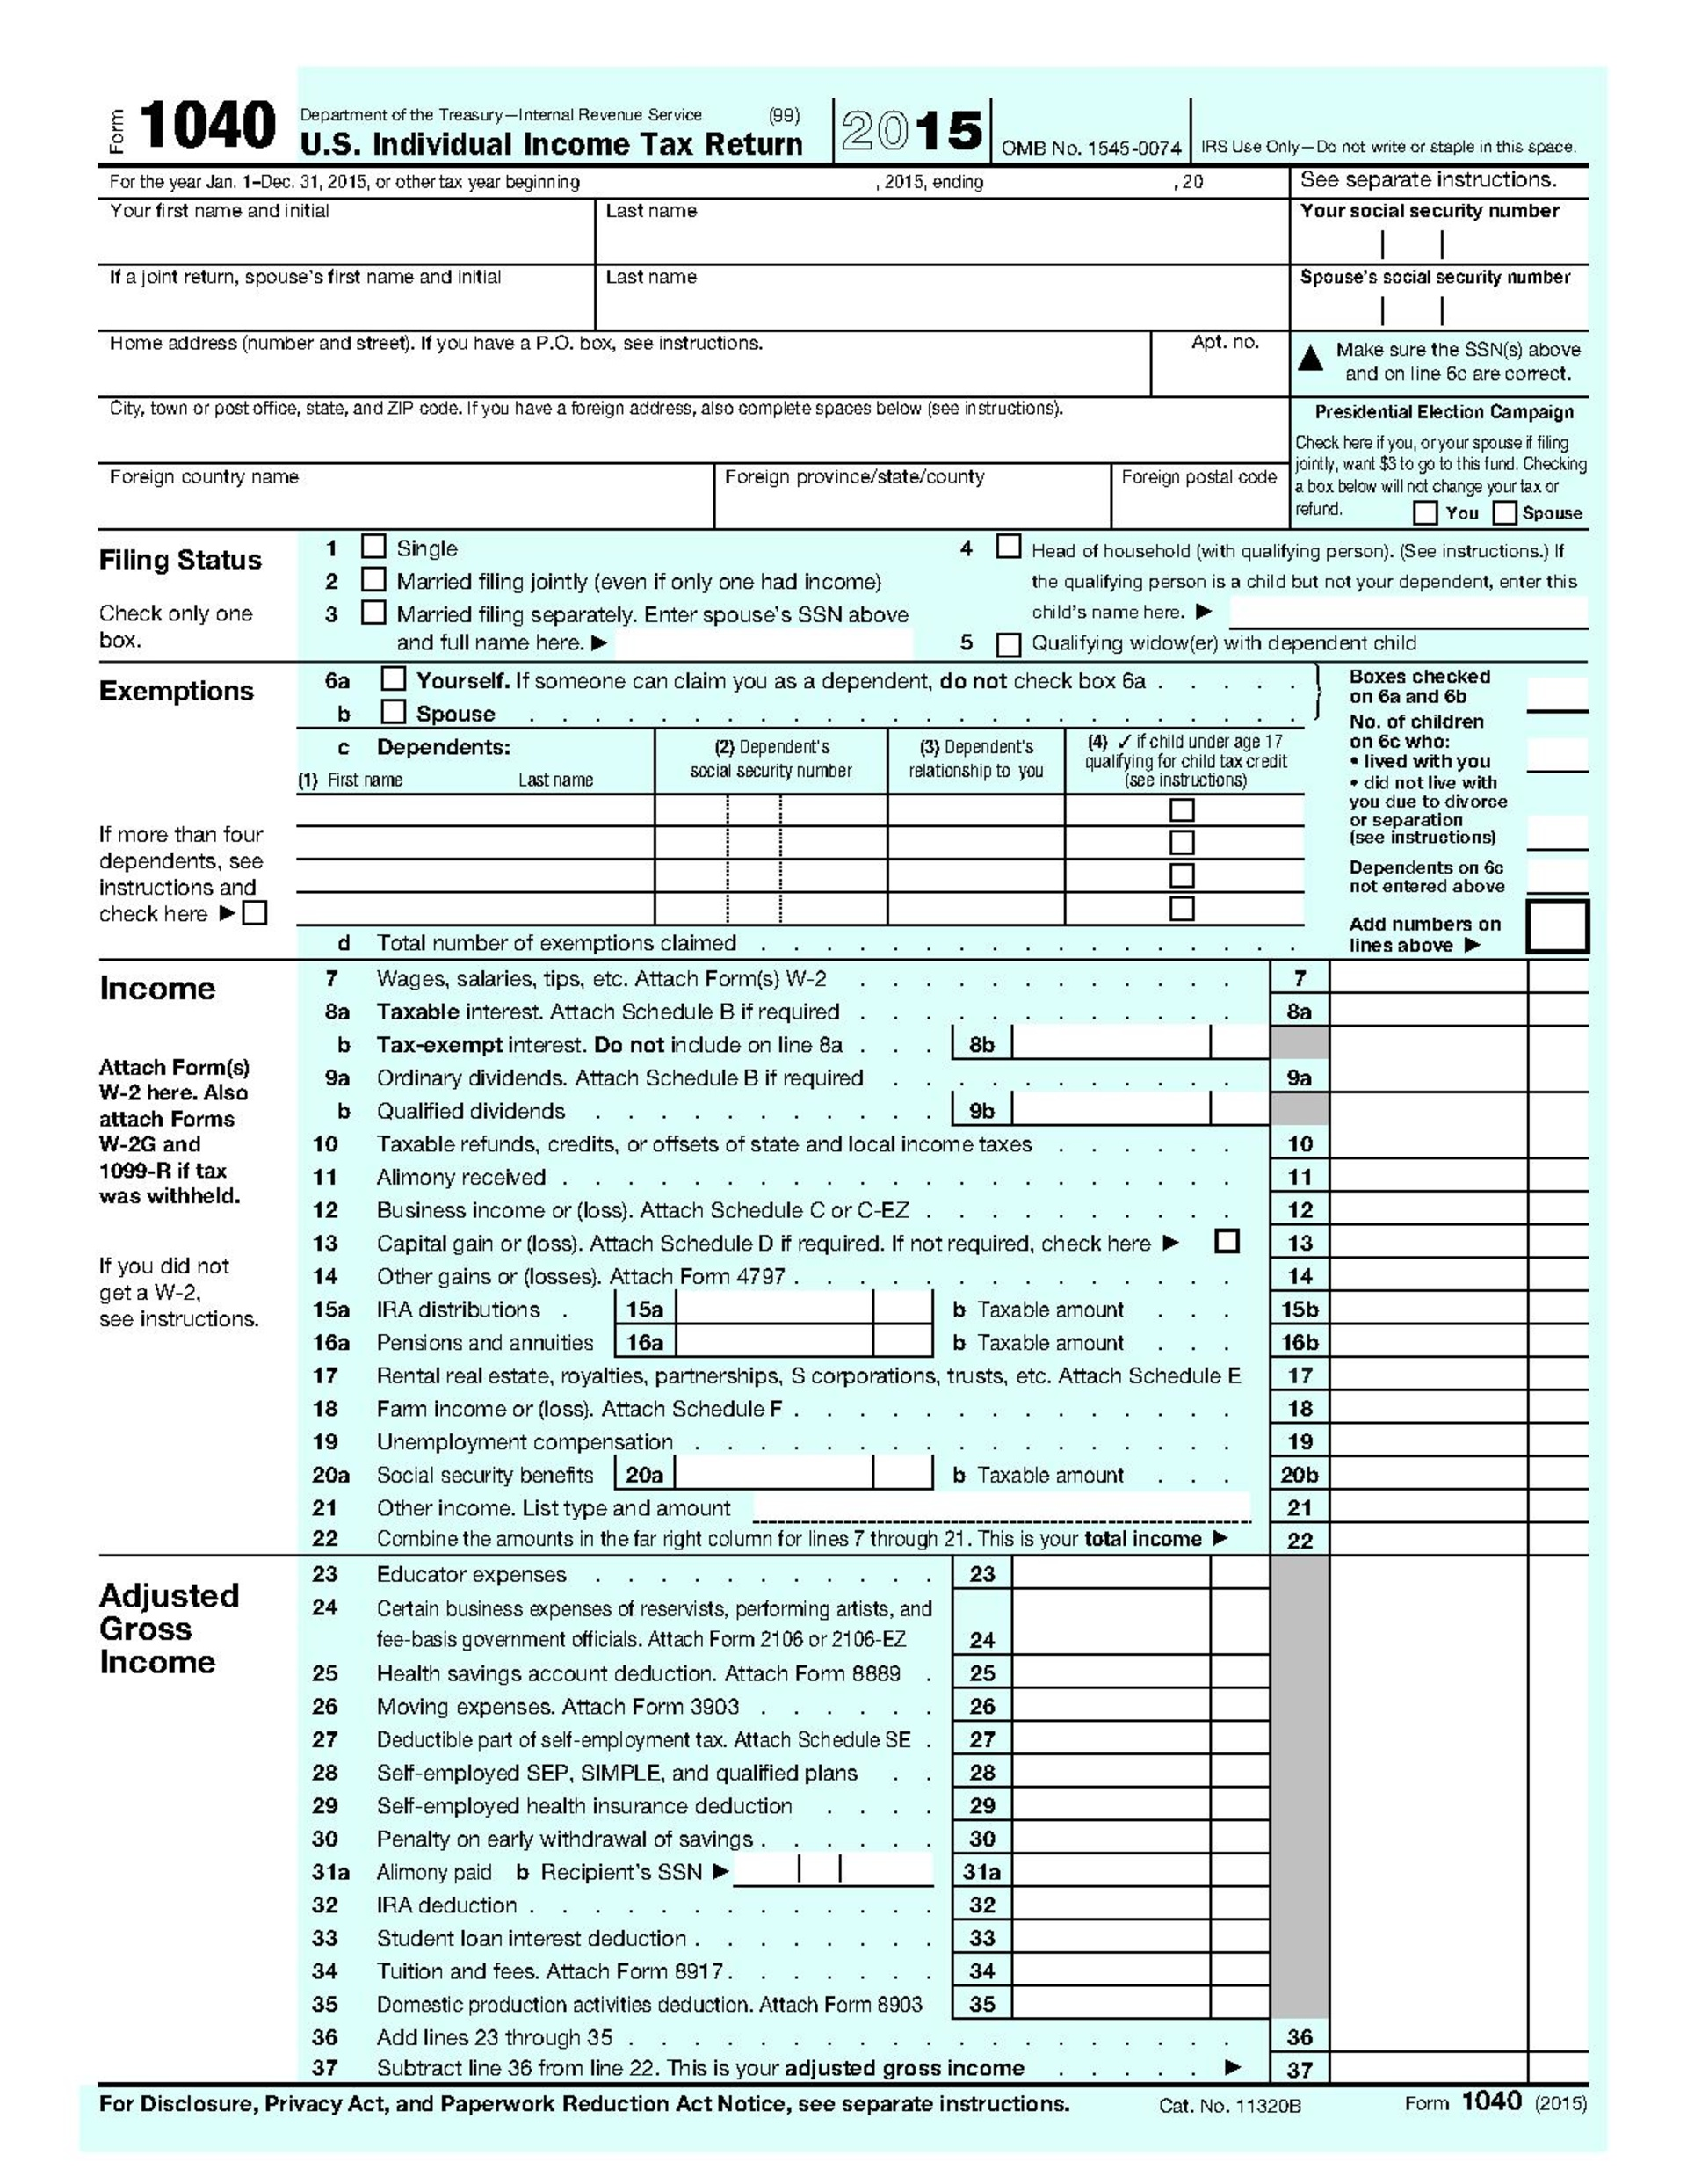 Printables Tax Computation Worksheet 2014 tax computation worksheet precommunity printables worksheets how to calculate income in malaysia foreigners pinoy boleh the table below is based on annual reference for year 2014 wor